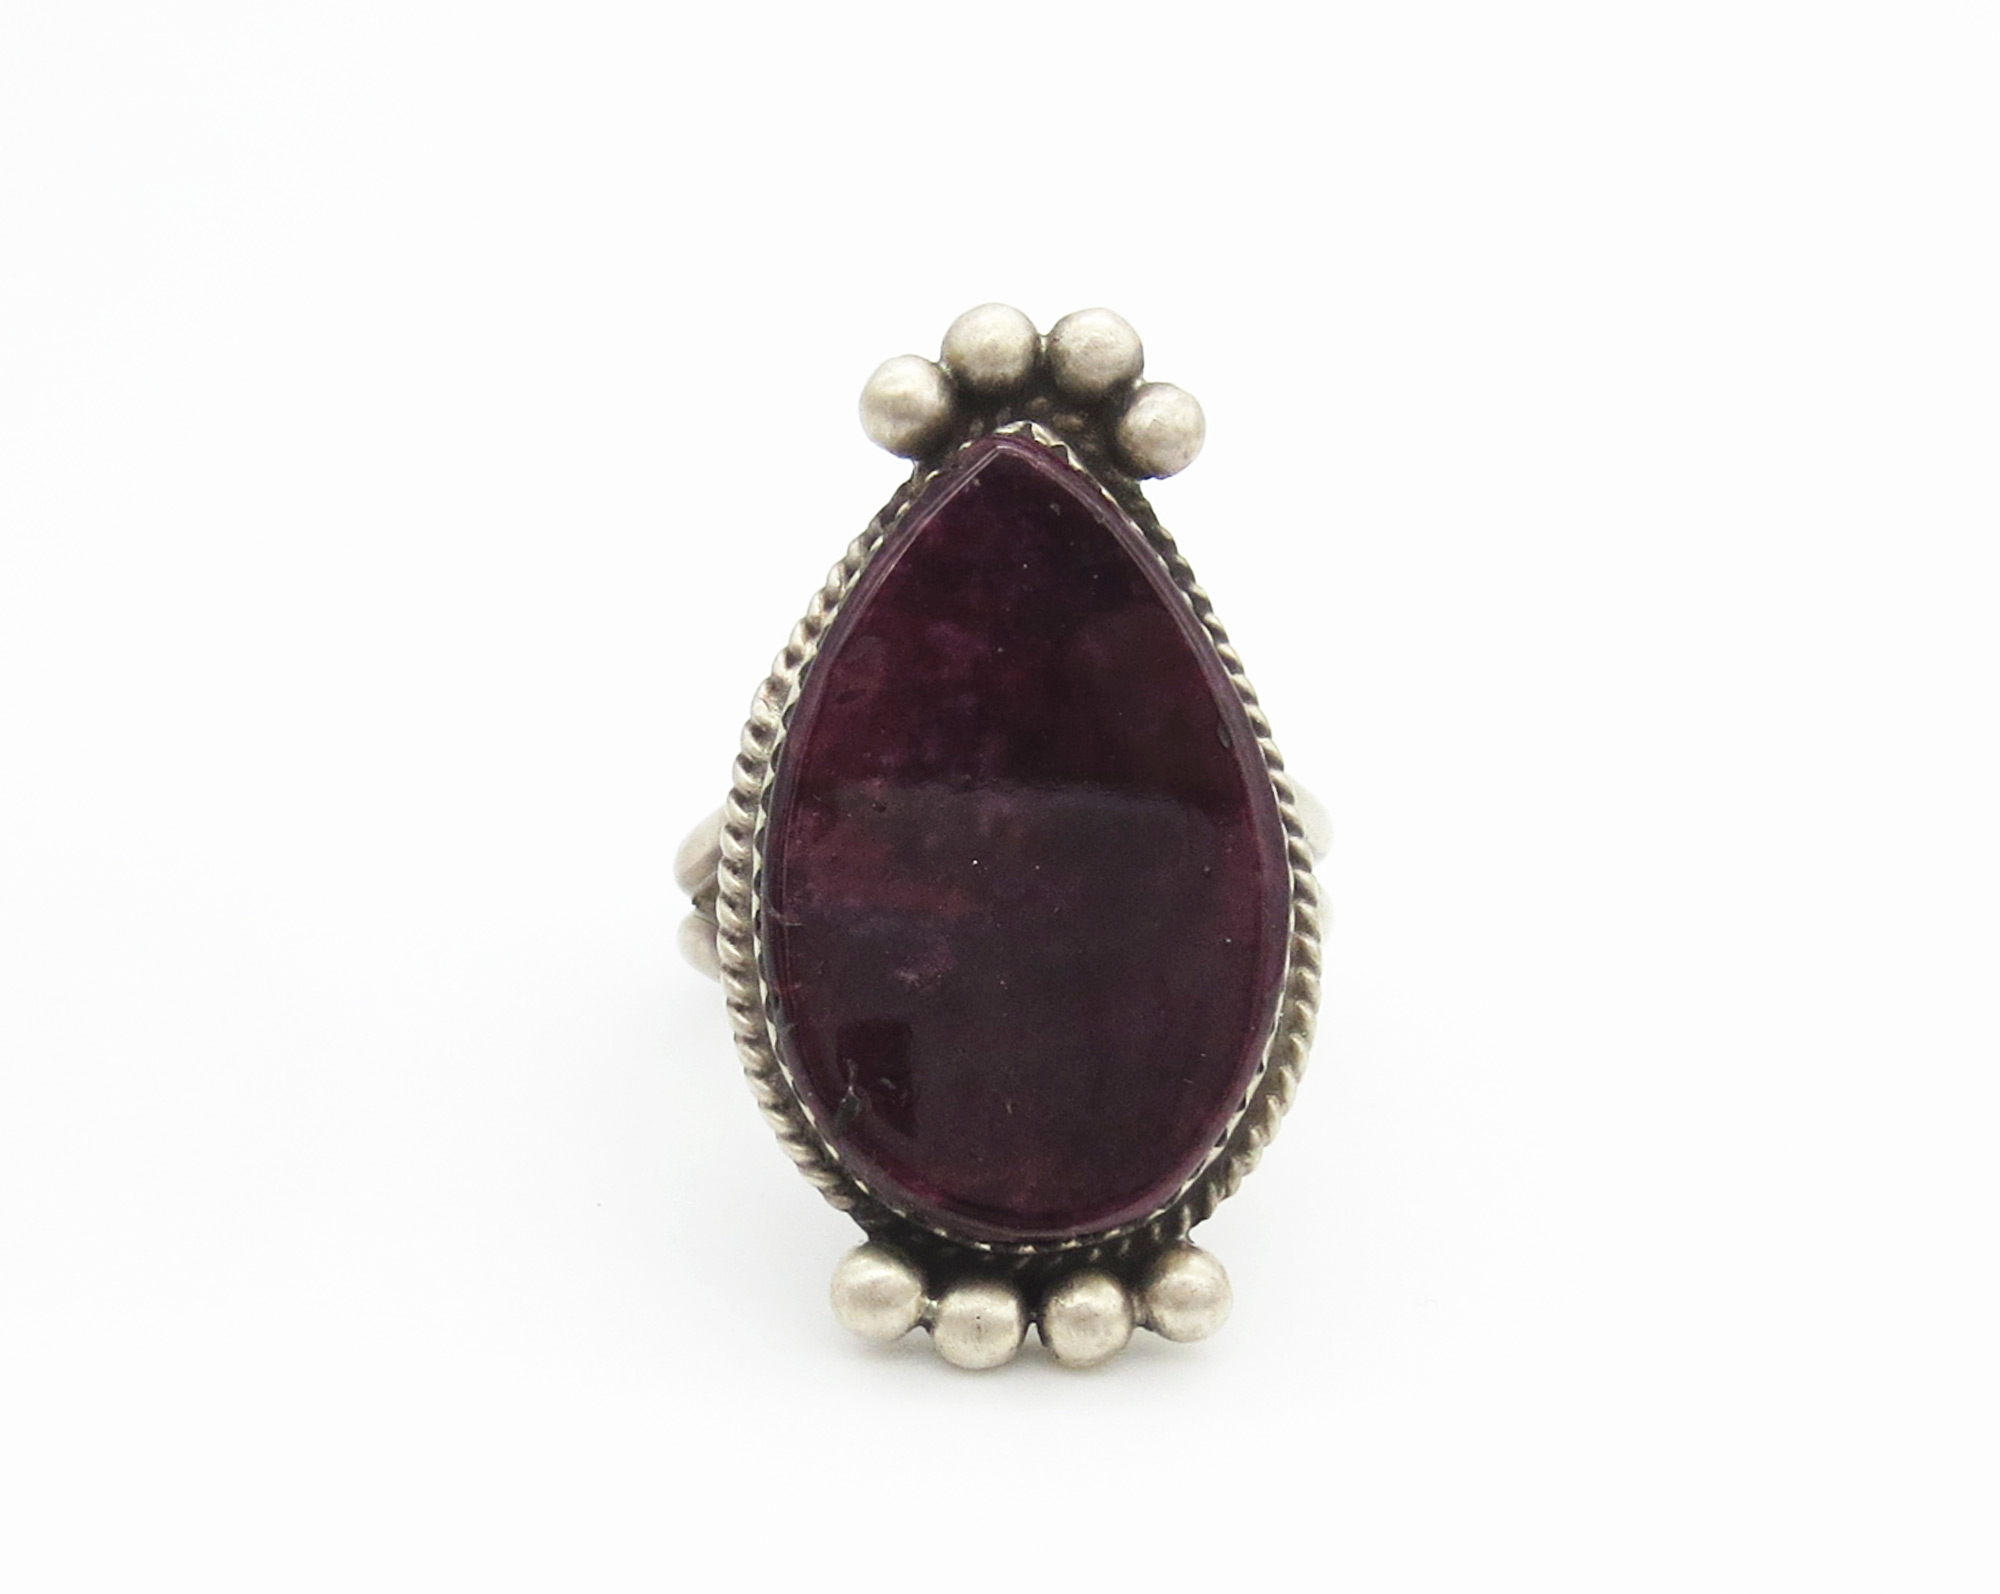 Image 0 of Deep Purple Spiny Oyster & Sterling Silver Ring Size 9.5 - 6245rio